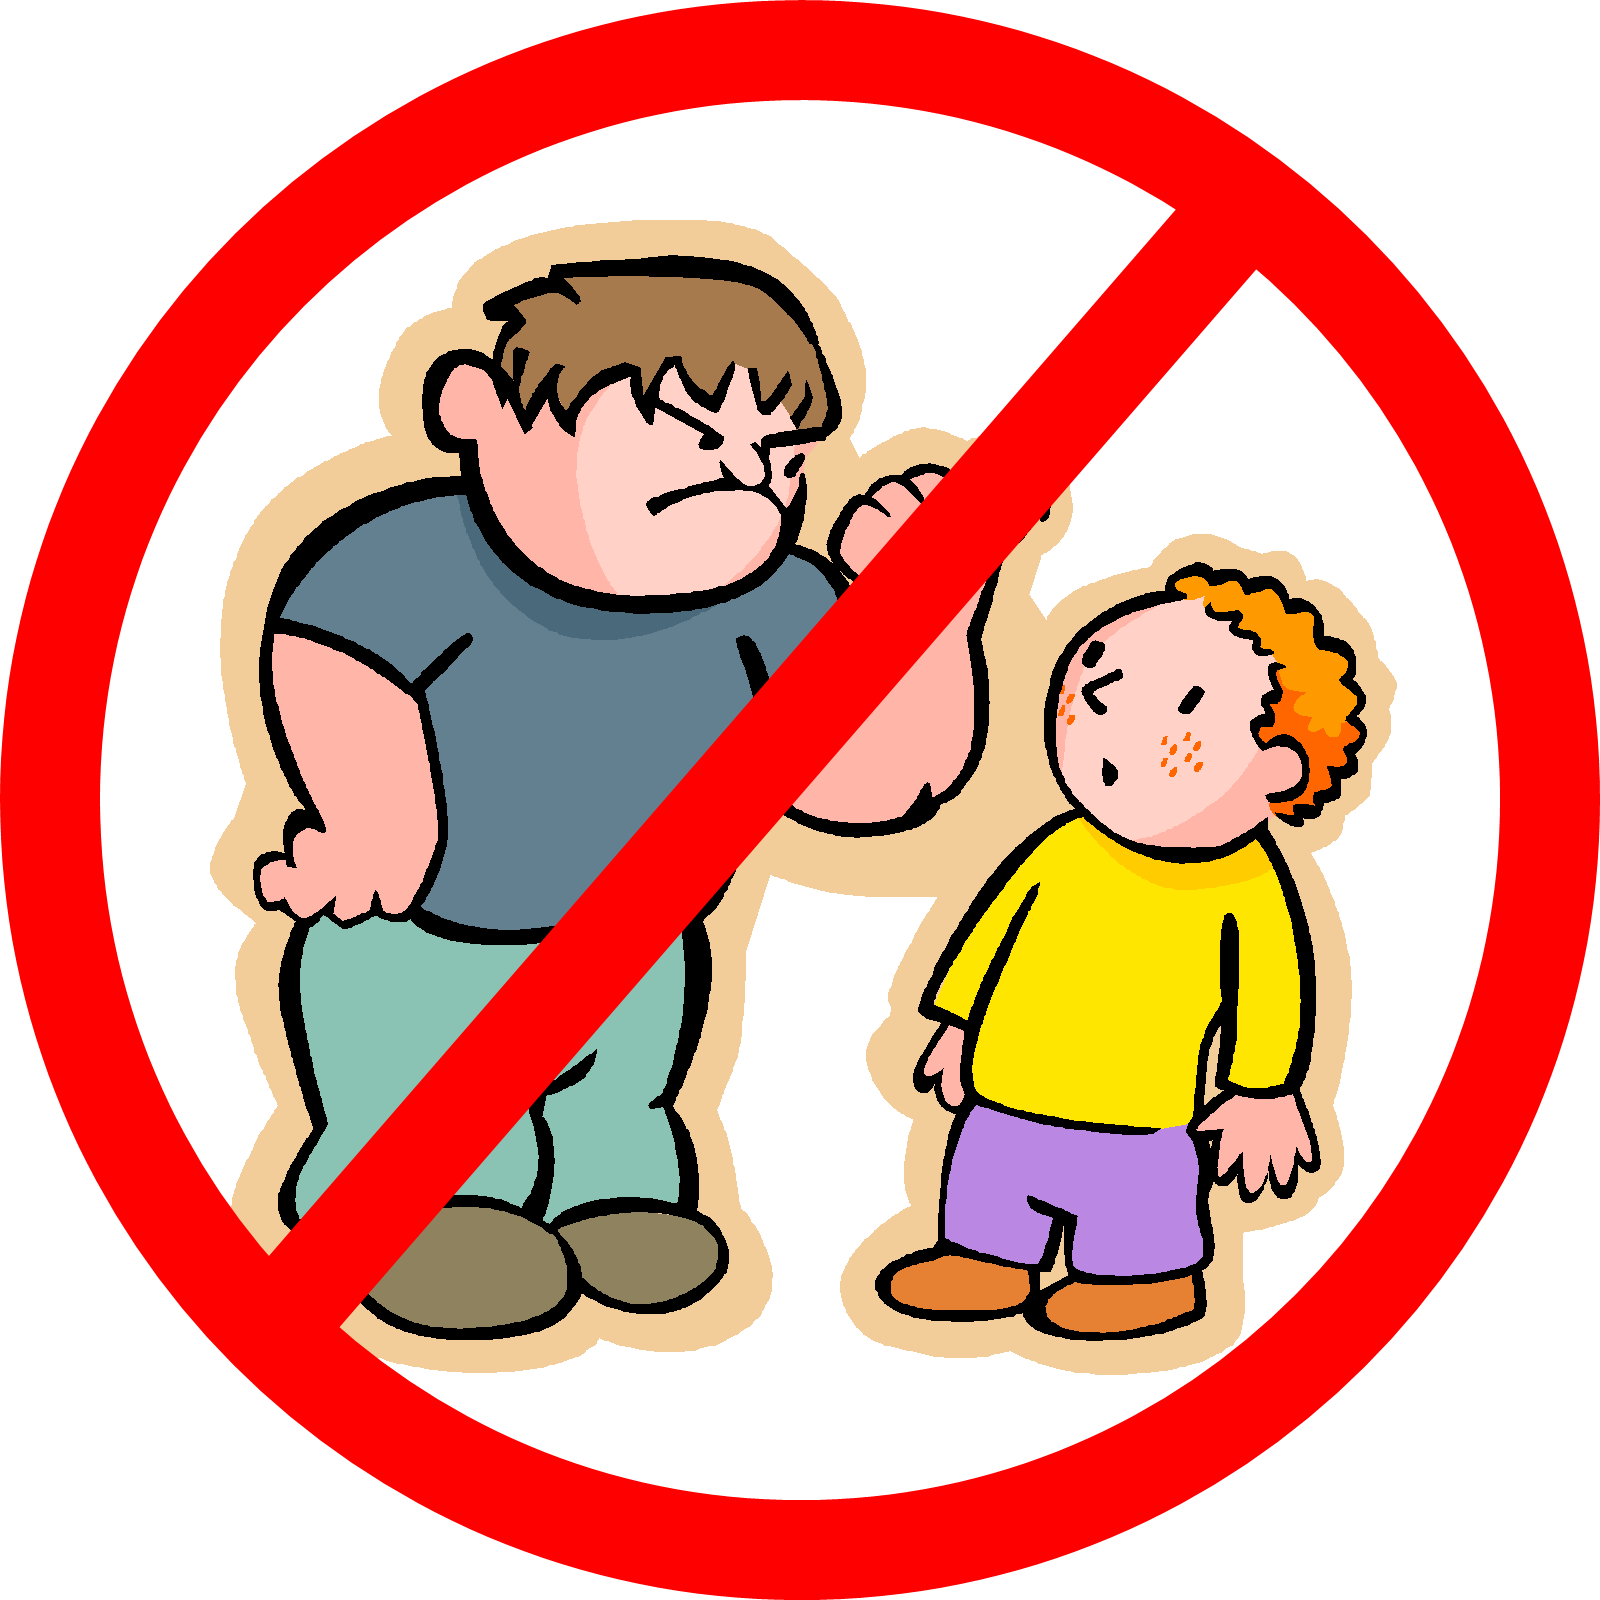 27 all schools should implement bullying awareness programs Name: course: instructor: date: all schools should implement bullying awareness programs bullying refers to the use of force to intimidate or impose domination on others.